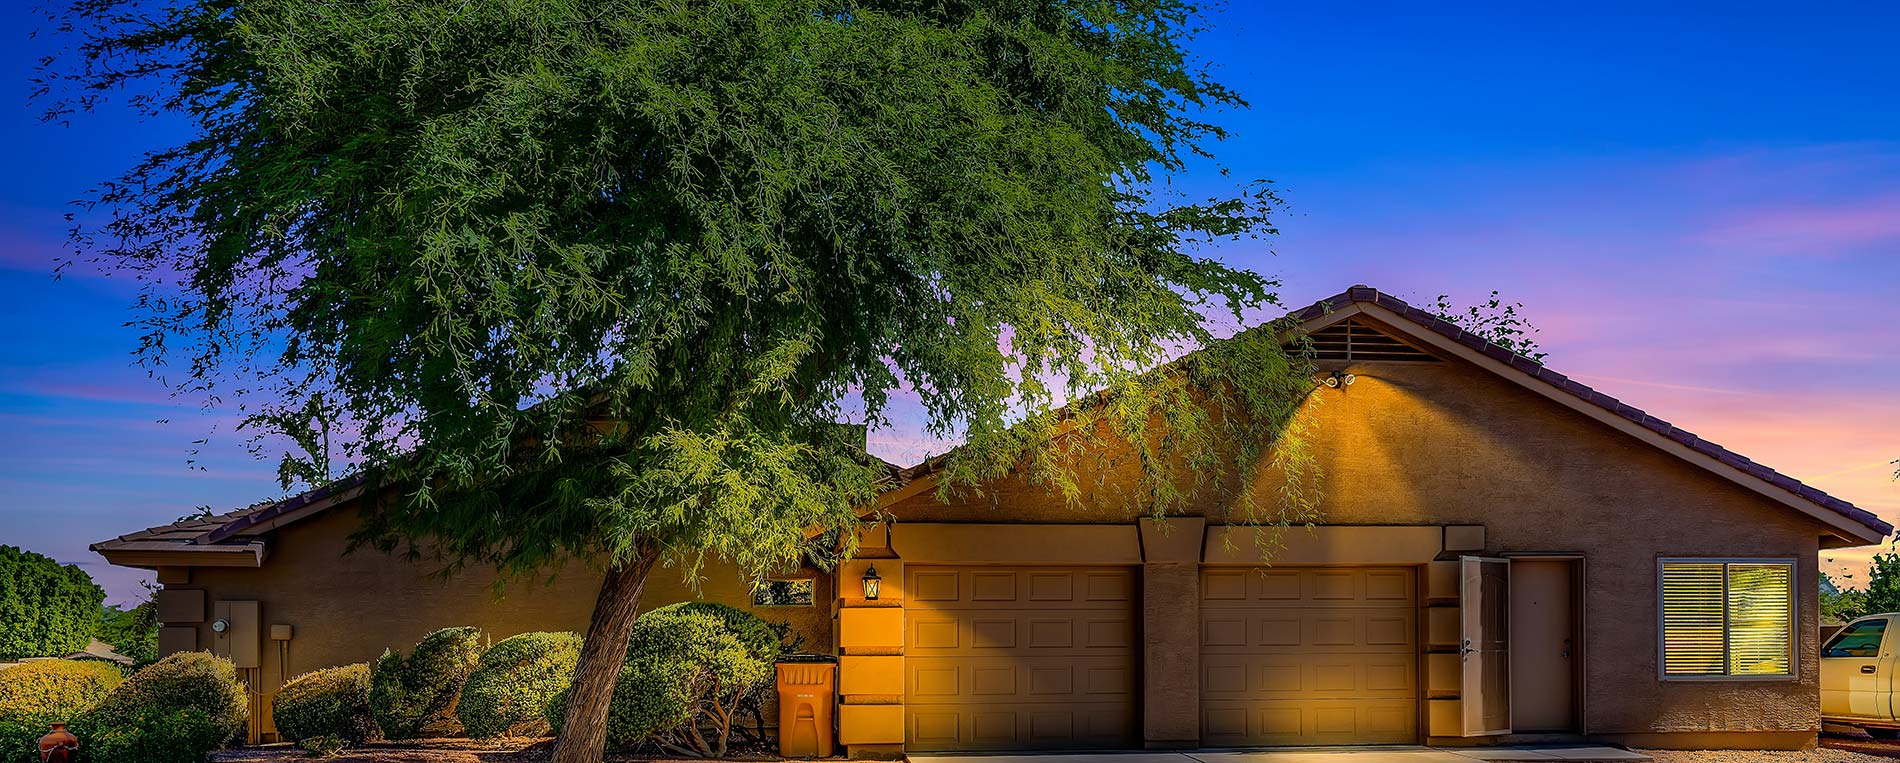 Three Things to Consider When Choosing a Garage Door Opener